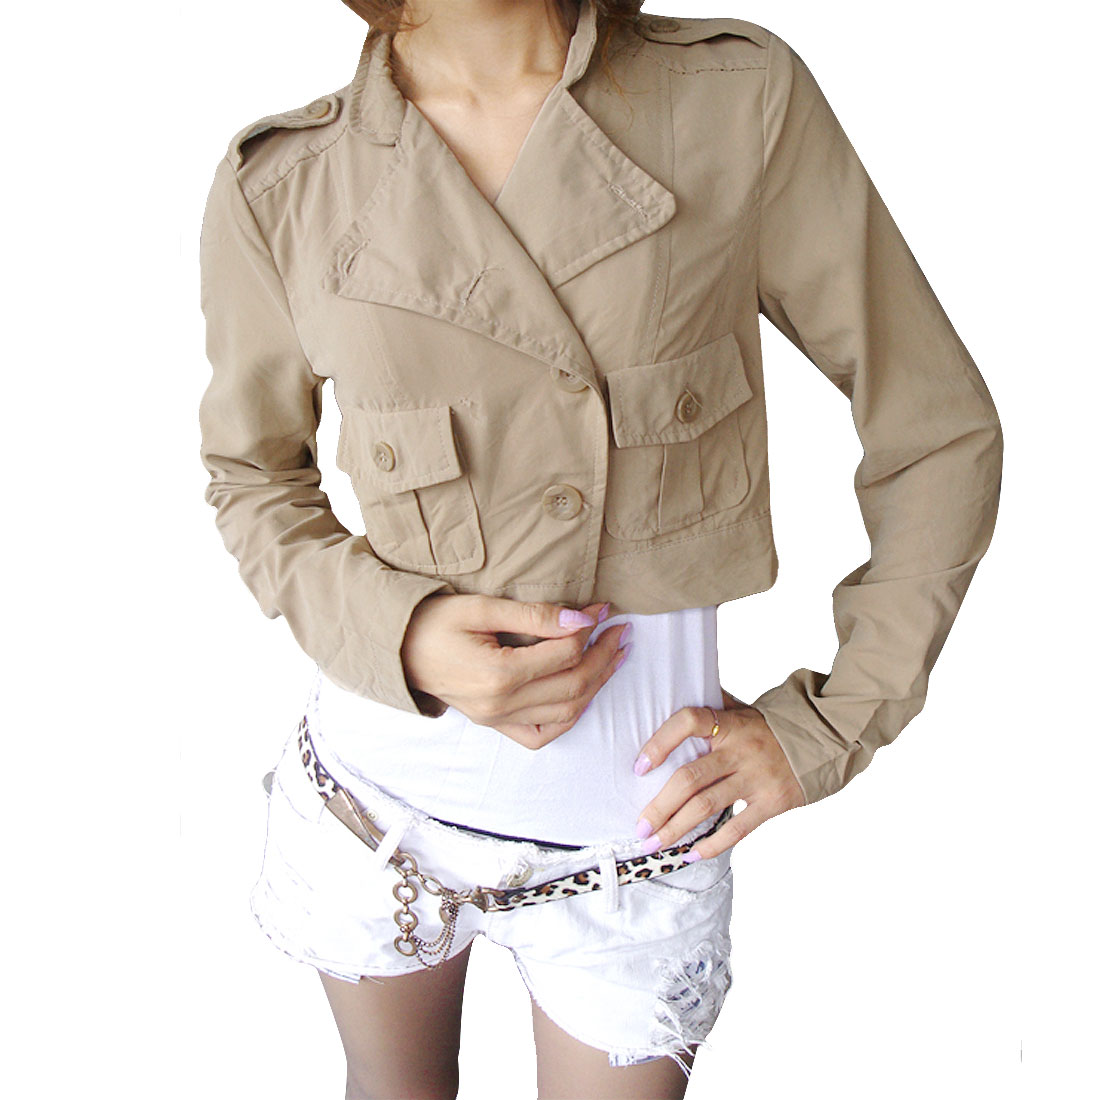 Charming Patch Pockets Front Jacket Short Top Khaki XS for Woman